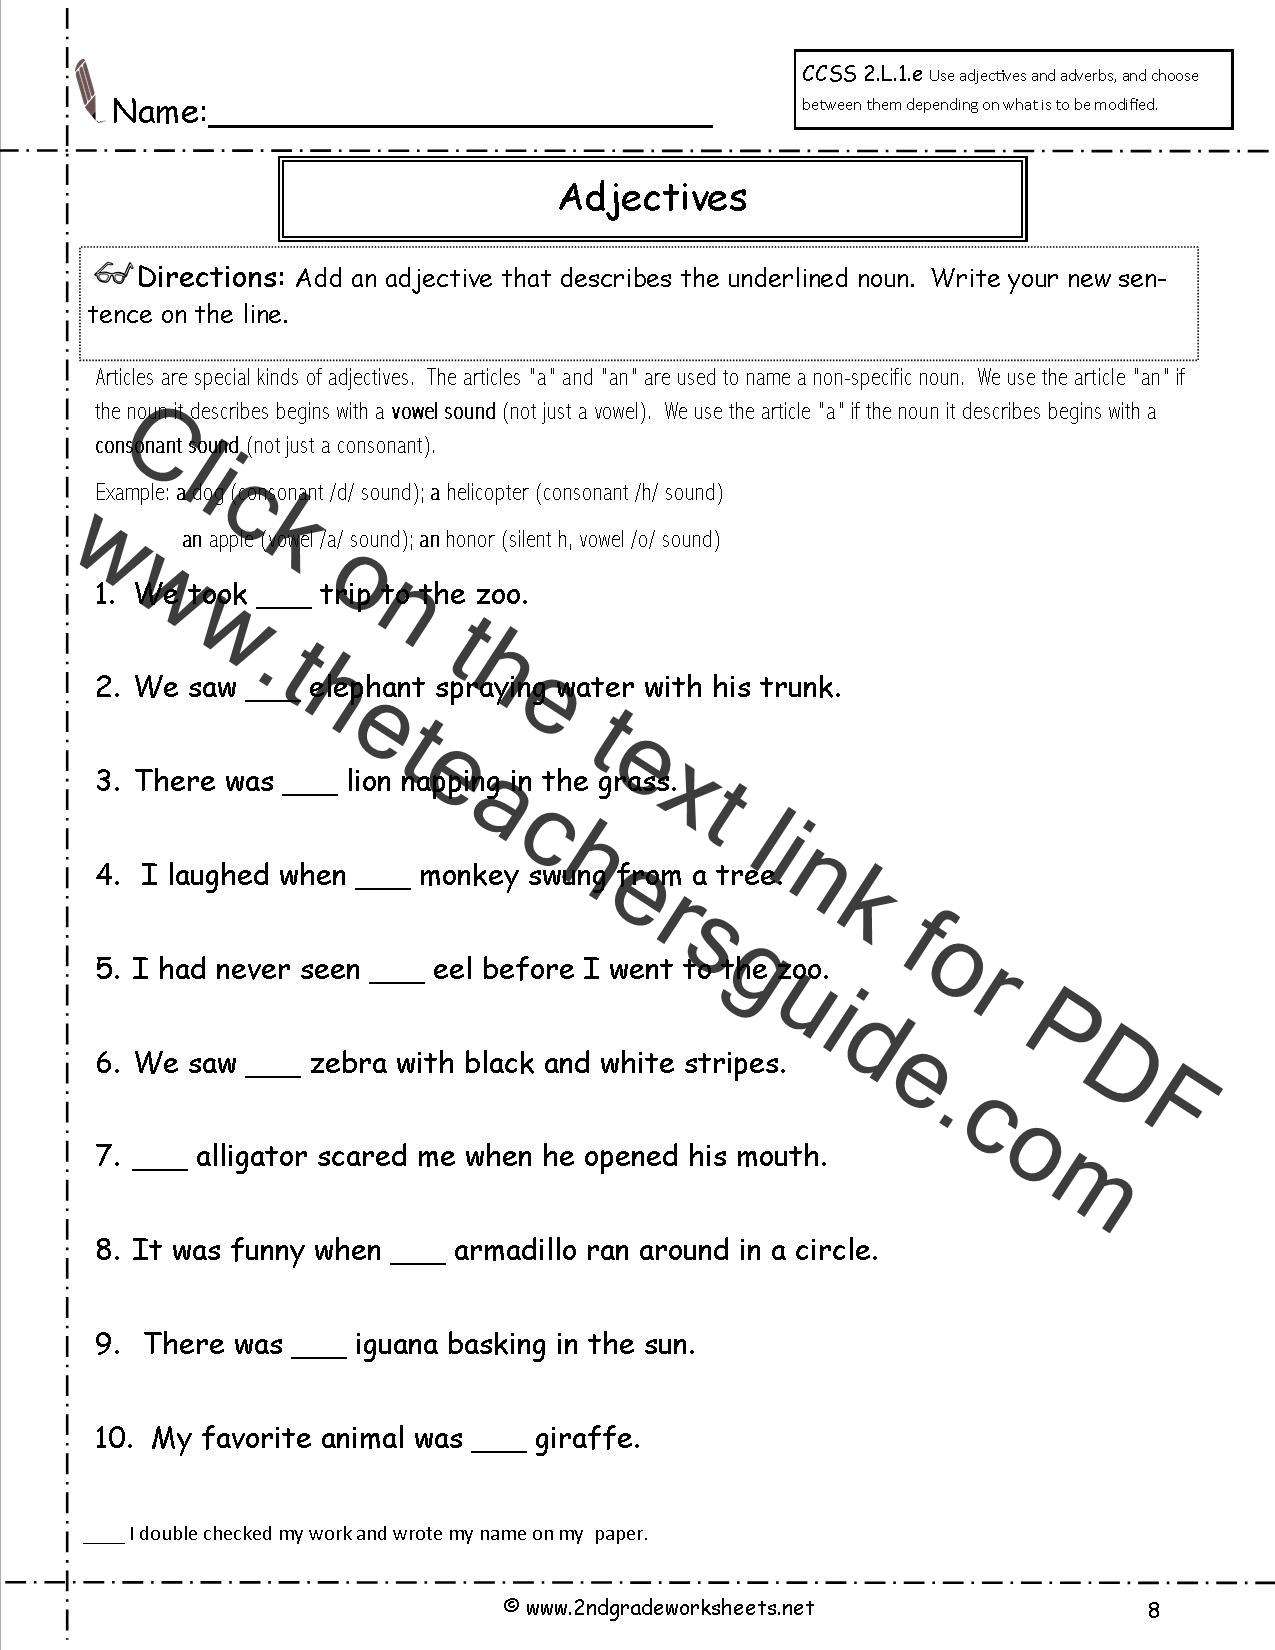 Worksheets Grammar Worksheets For 2nd Grade free languagegrammar worksheets and printouts adjectives worksheets